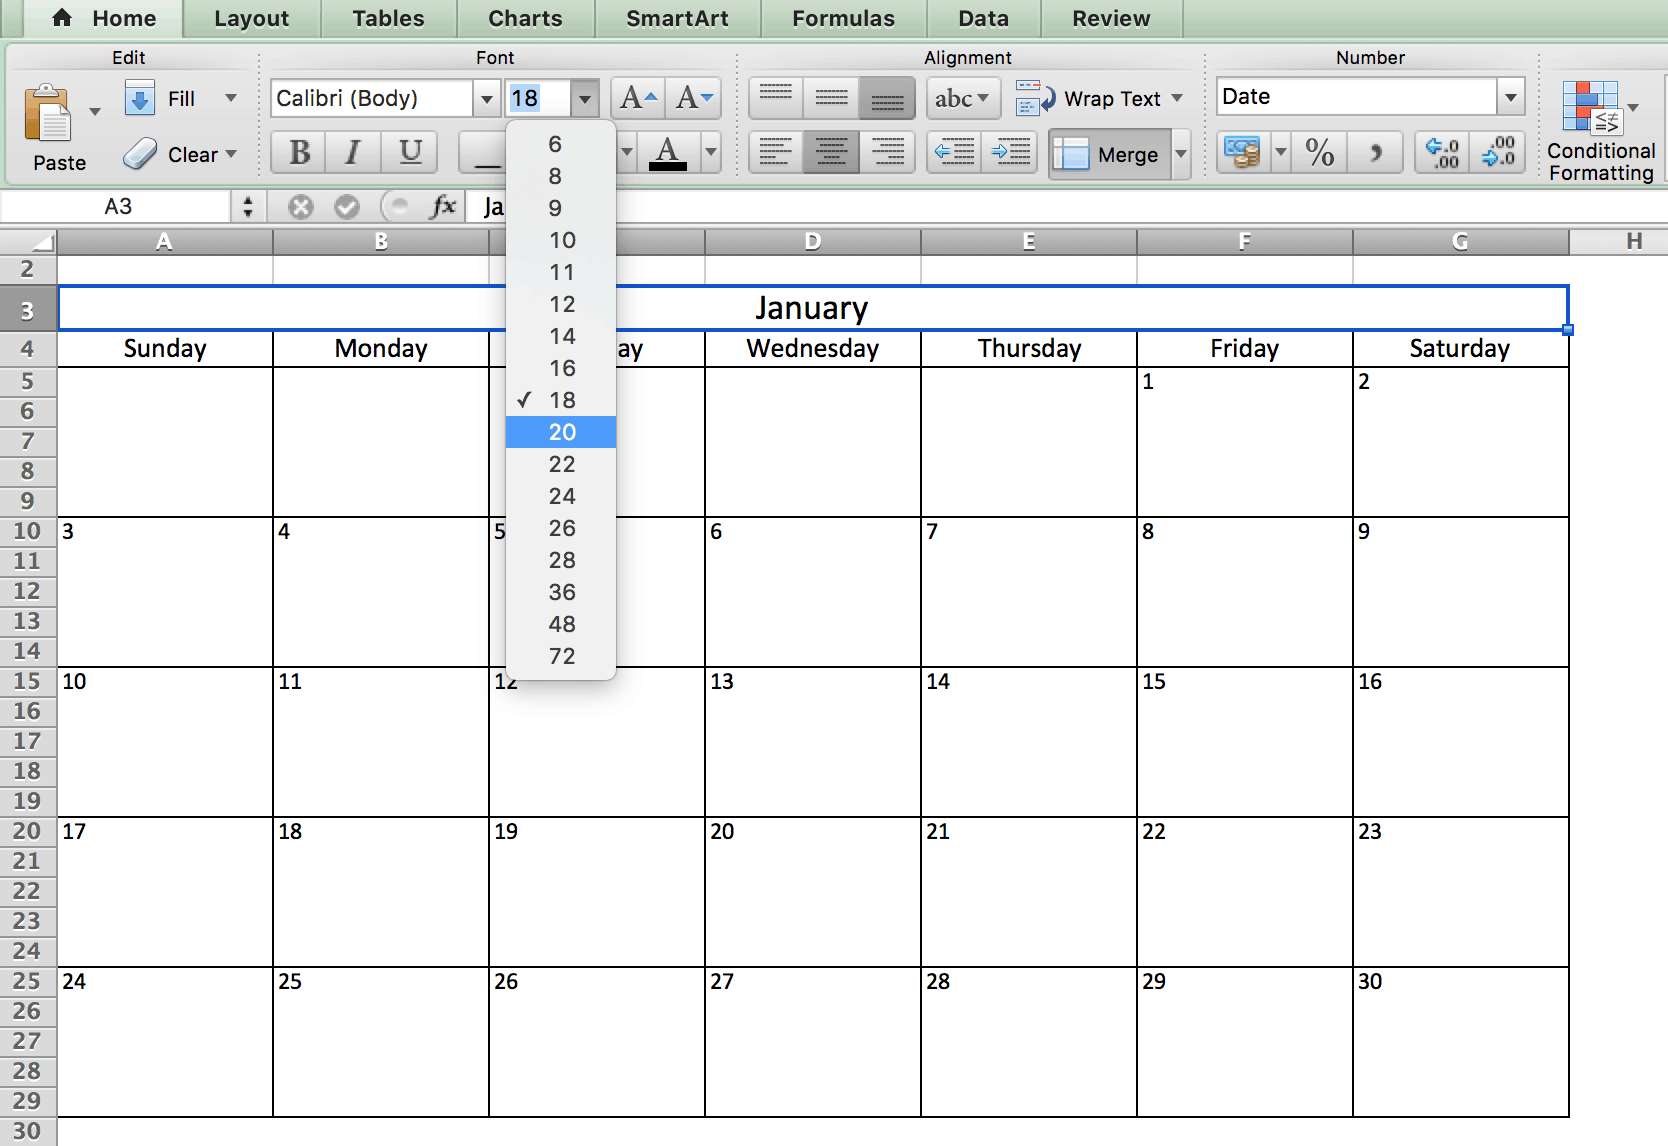 Calendar Planner Excel Template : Make a calendar in excel includes free template